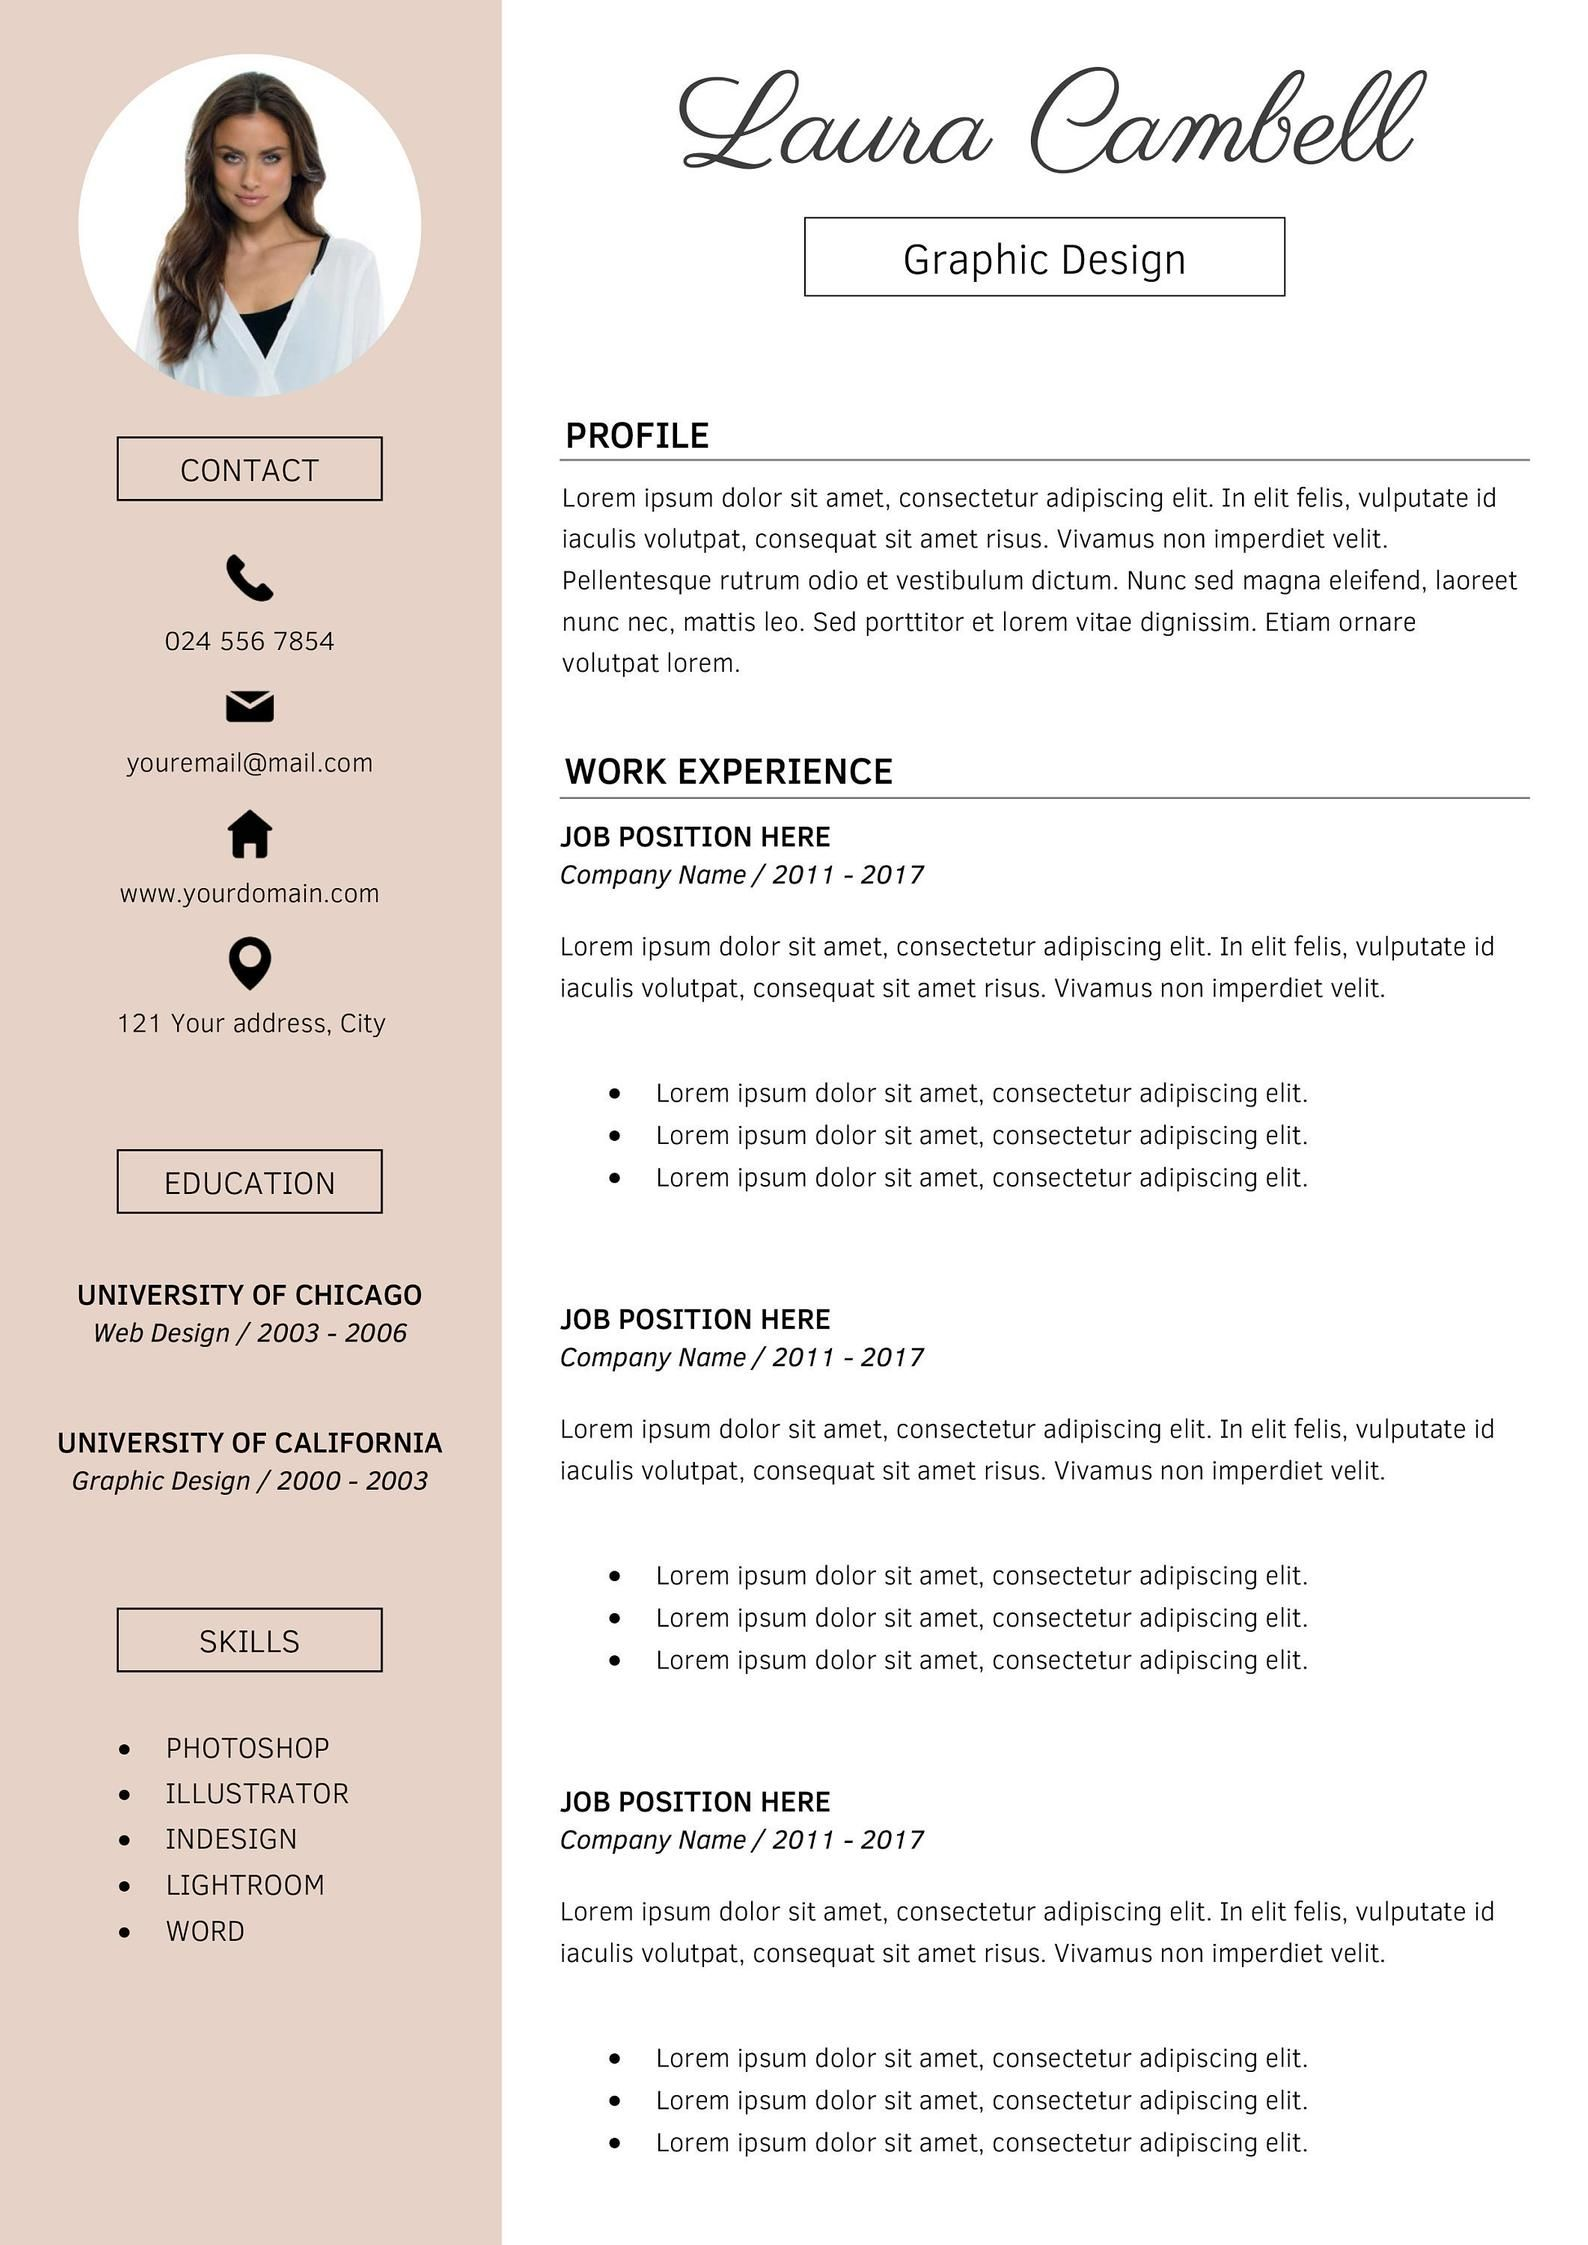 Modern Resume Template | CV Template for MS Word | Professional Resume Design | Resume Cover Letter | Resume Instant Download